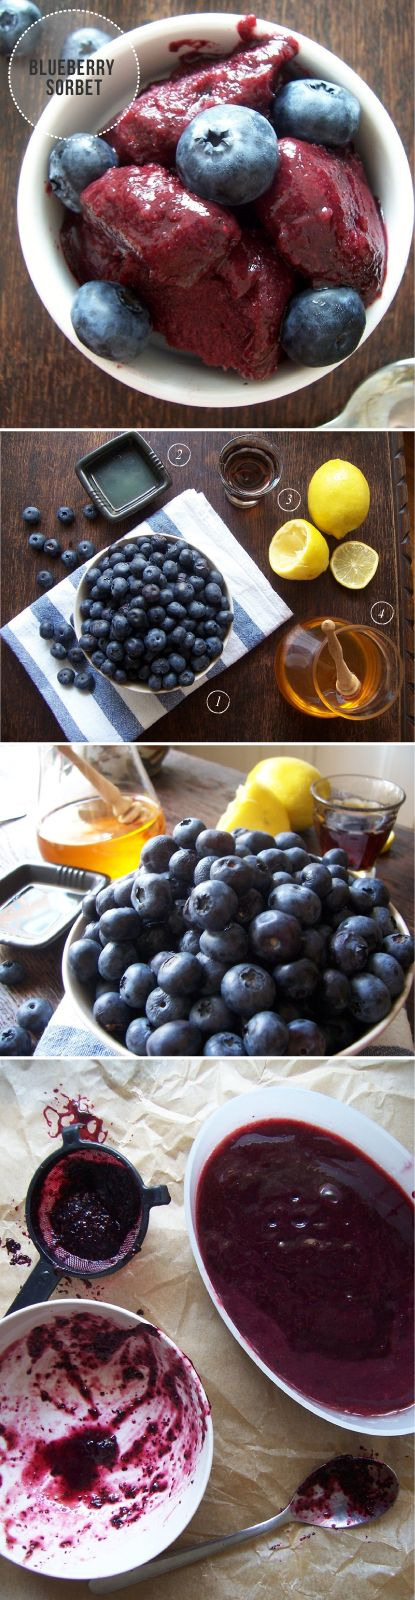 Homemade blueberry sorbet with honey and lemon... I'm needing to try this easy recipe out very soon...